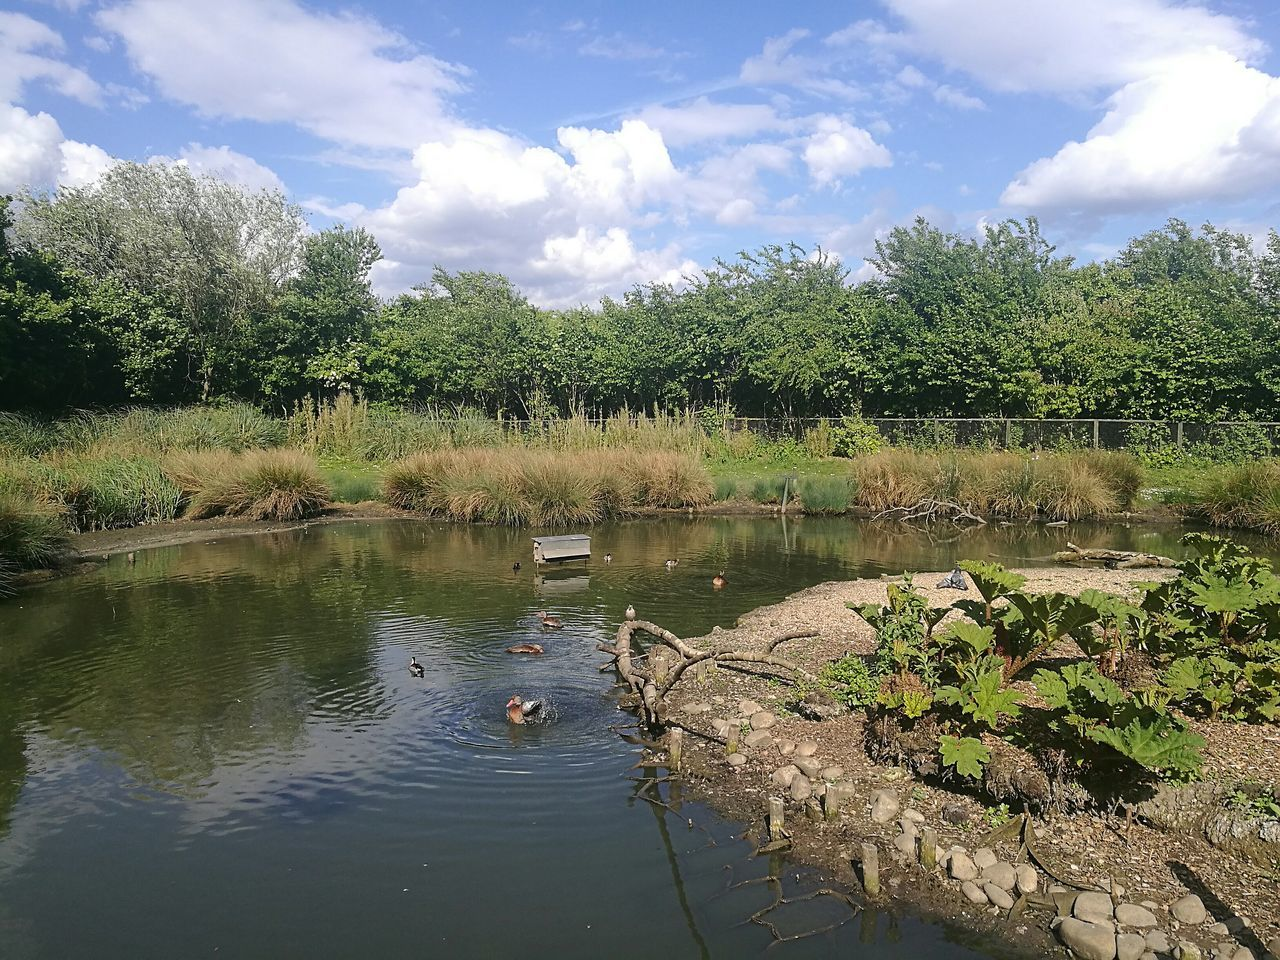 Sunny Day Outdoors Nature Water Cloud - Sky Landscape Wetland Wetland Centre London Nature Reserve WetlandsWildLife Wetland Birds Ducks Day Sky Lake Pond Reflection Smartphonephotography Sunny Tranquility Scenics Scenery Springtime Rippled Water